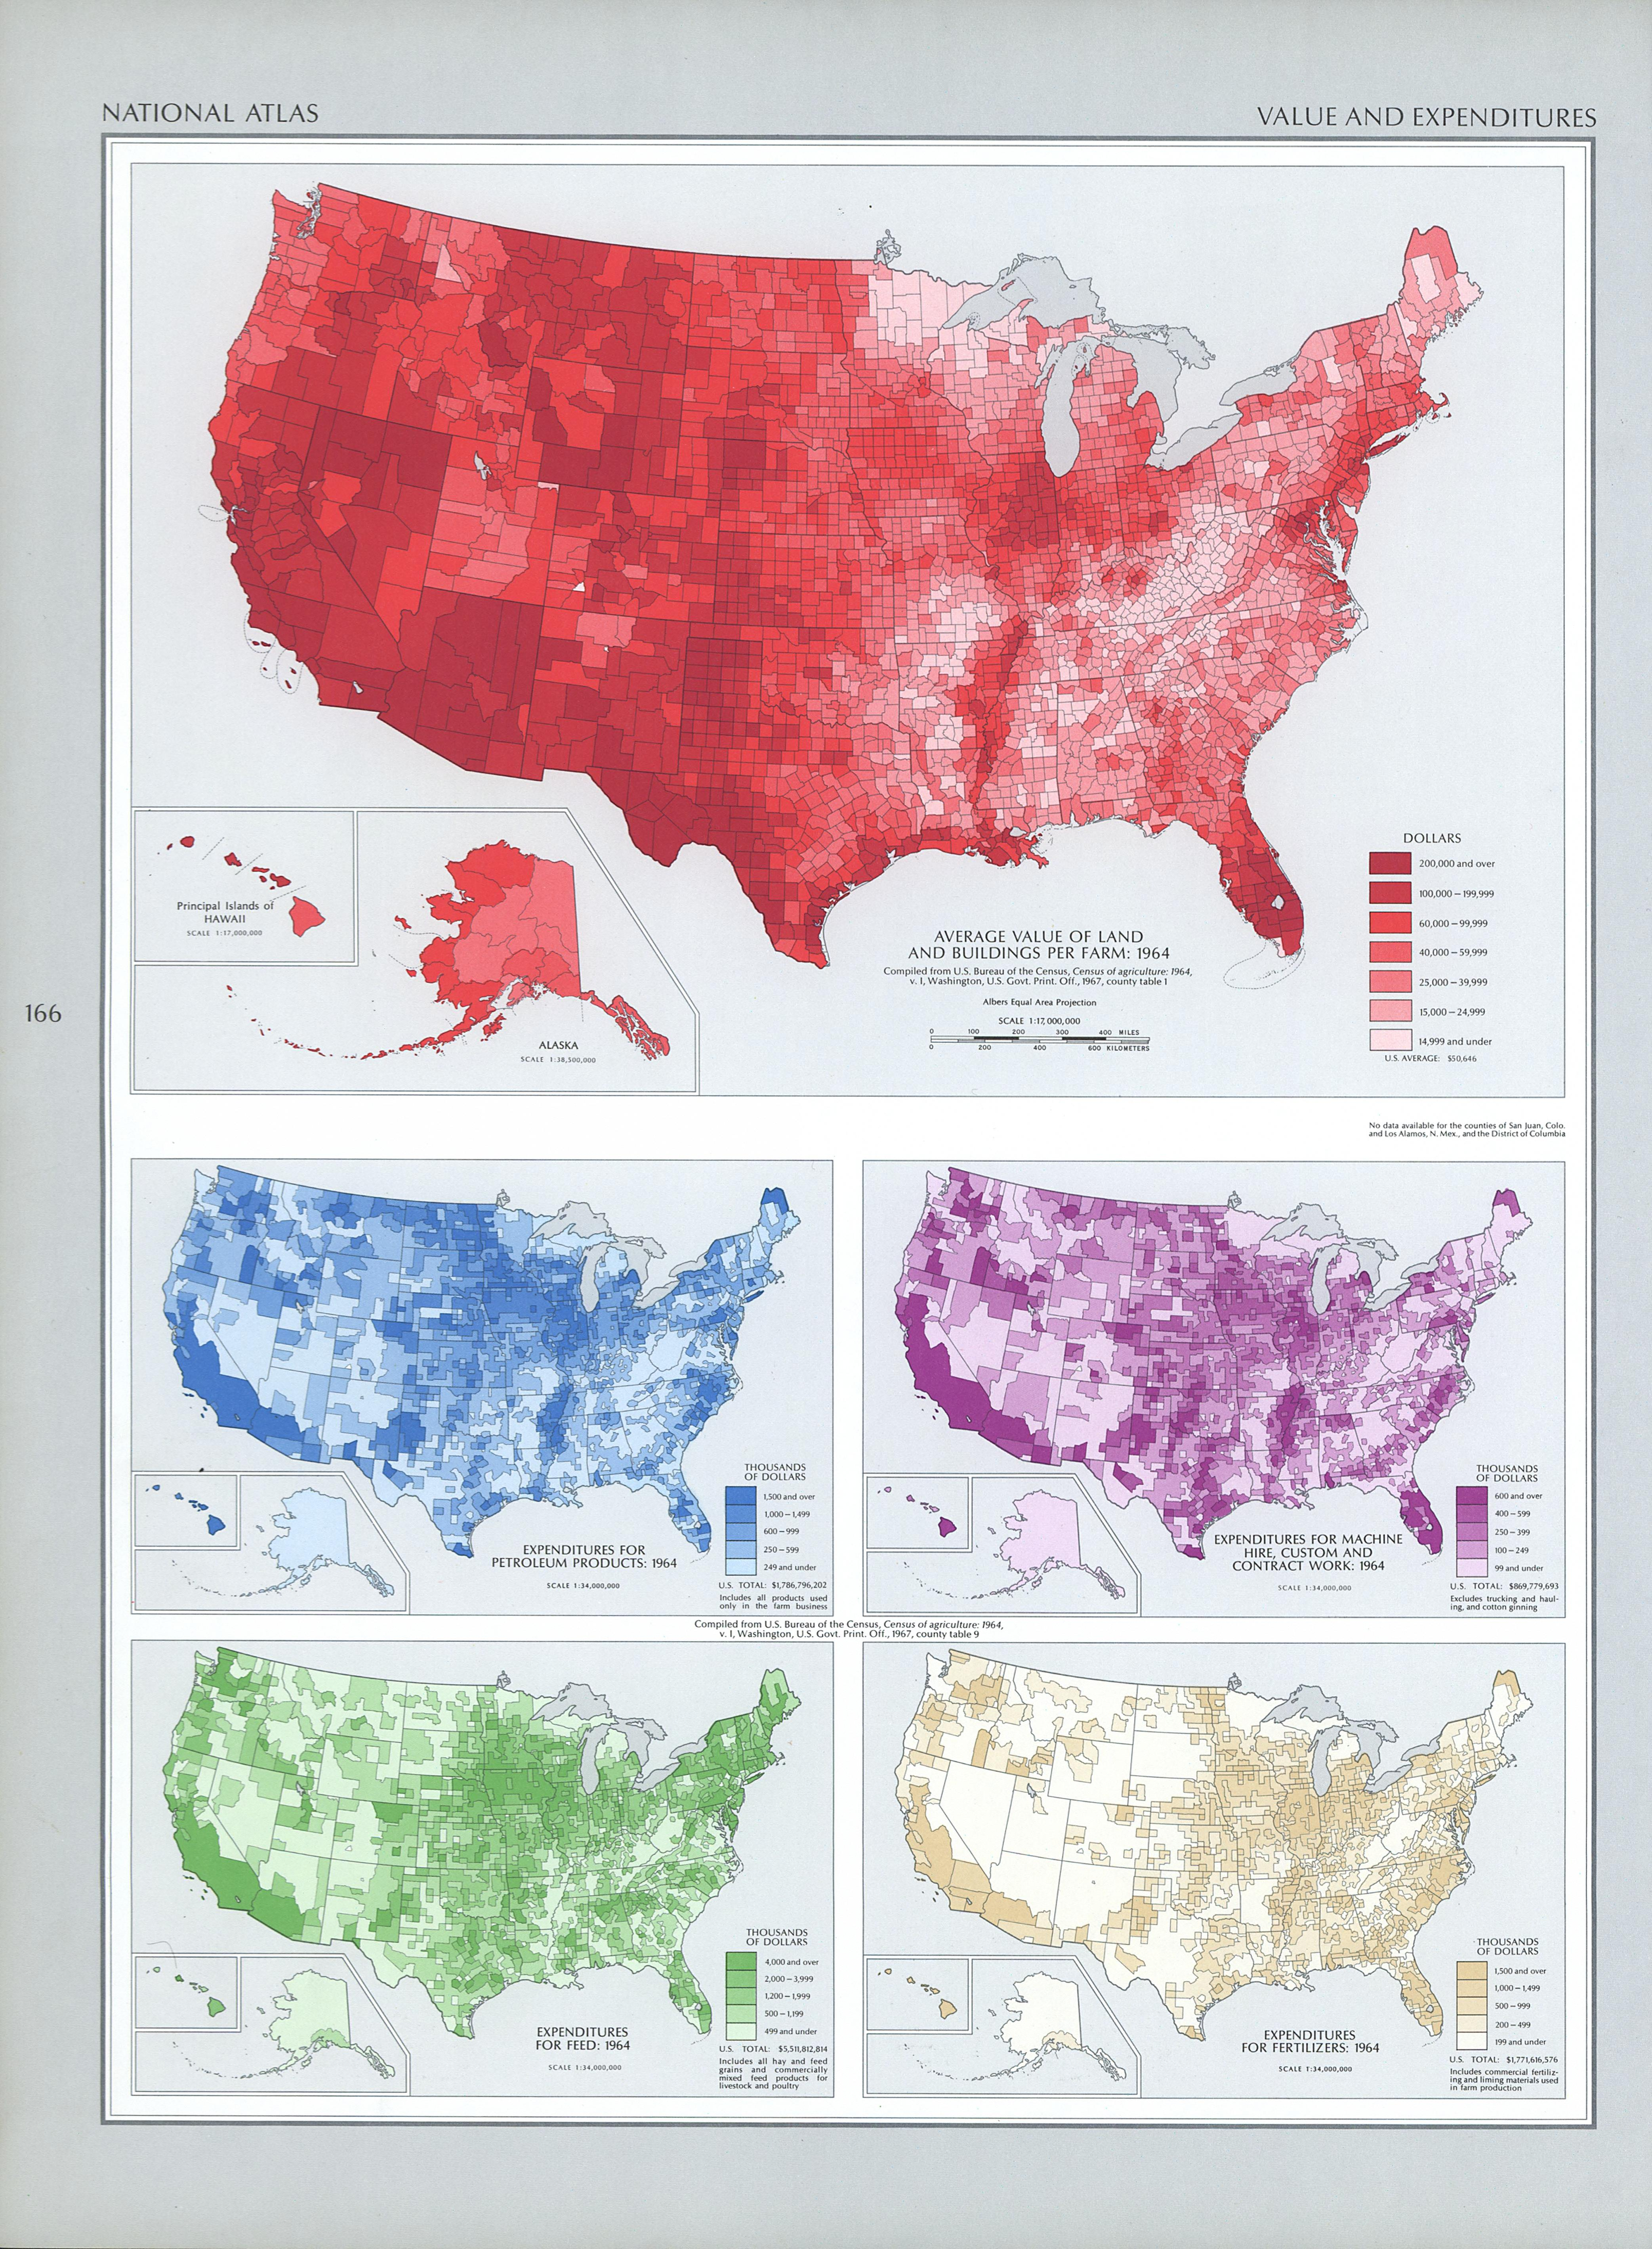 United States Value and Expenditures per Farm Map